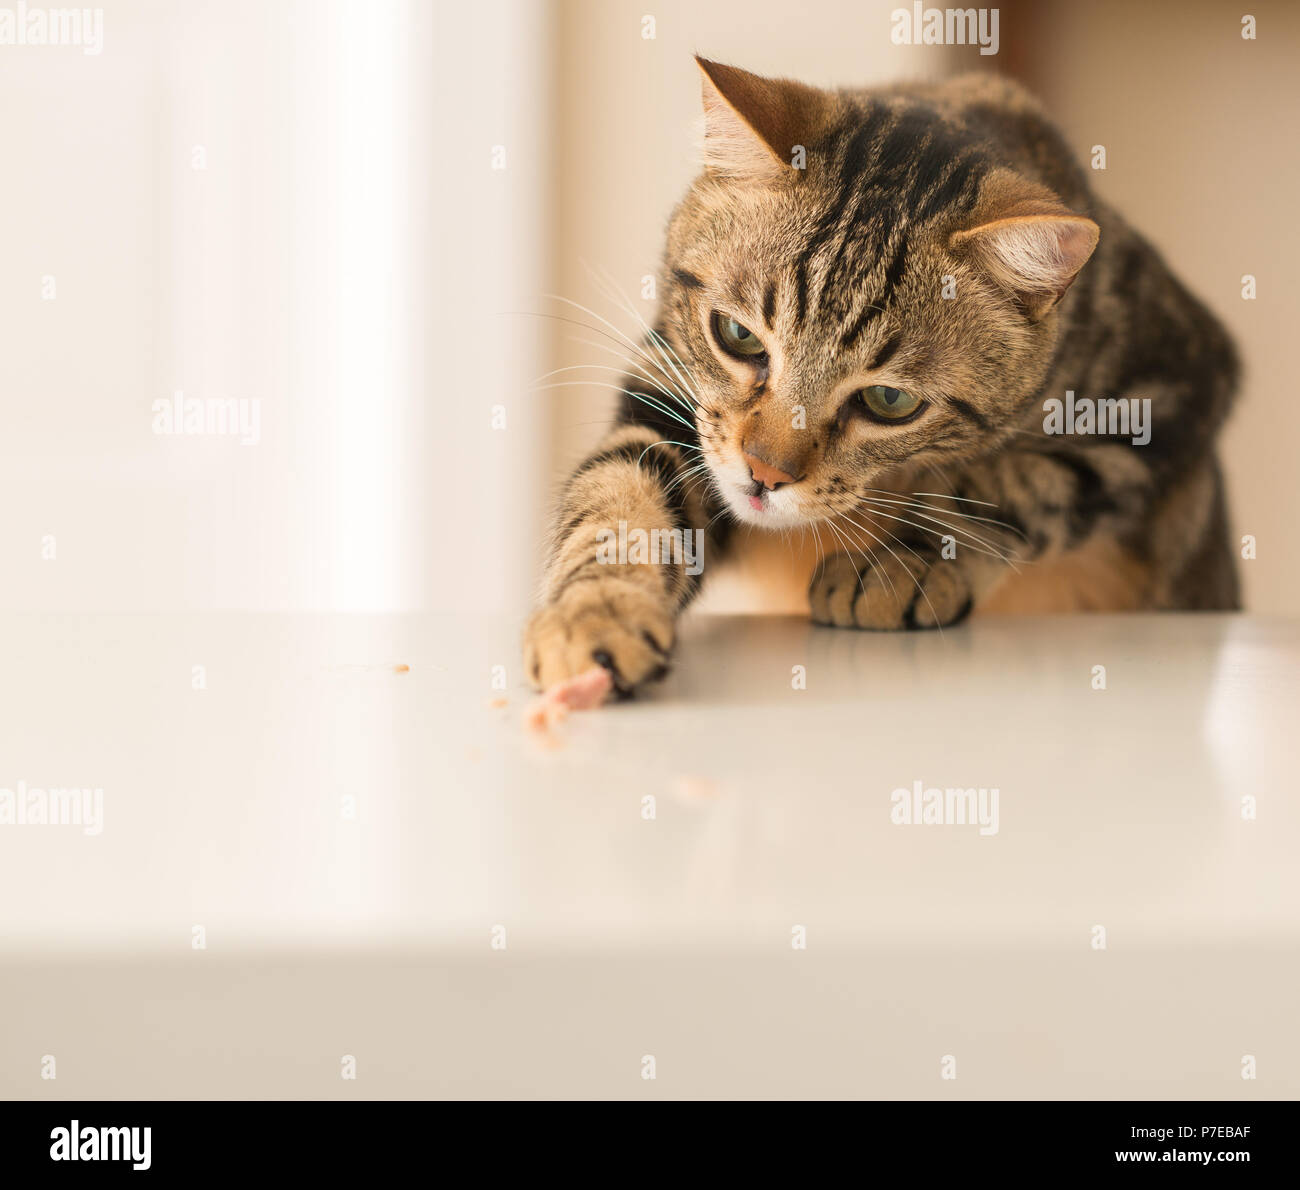 Beautiful feline cat at home. Domestic animal. - Stock Image